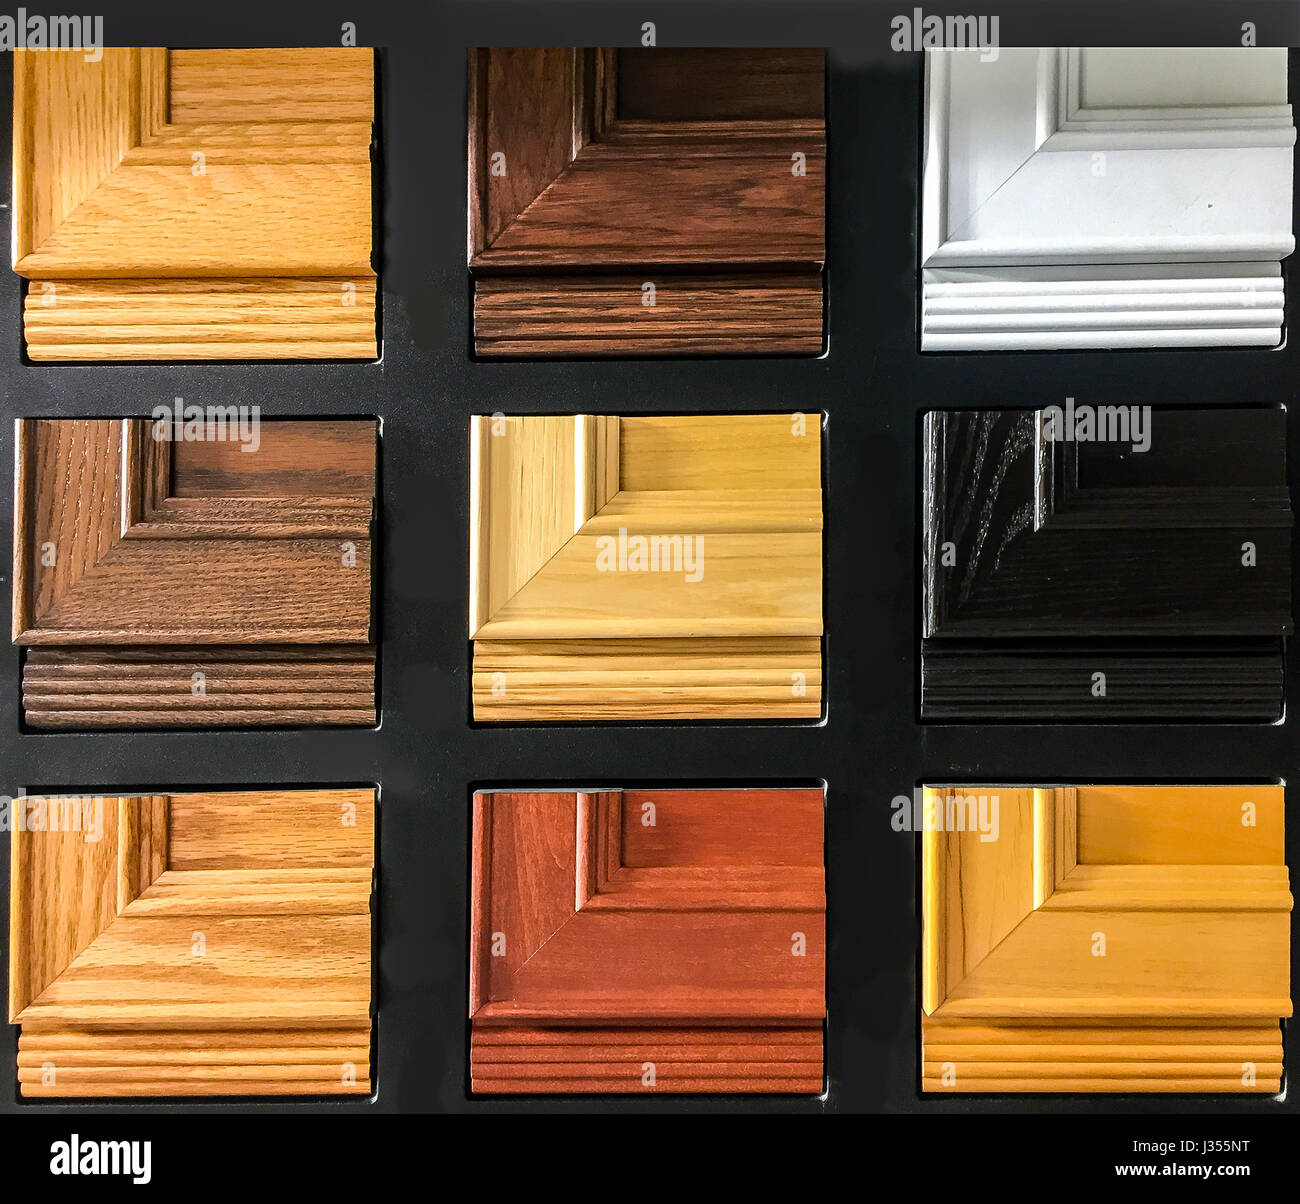 Cabinetry Stock Photos & Cabinetry Stock Images